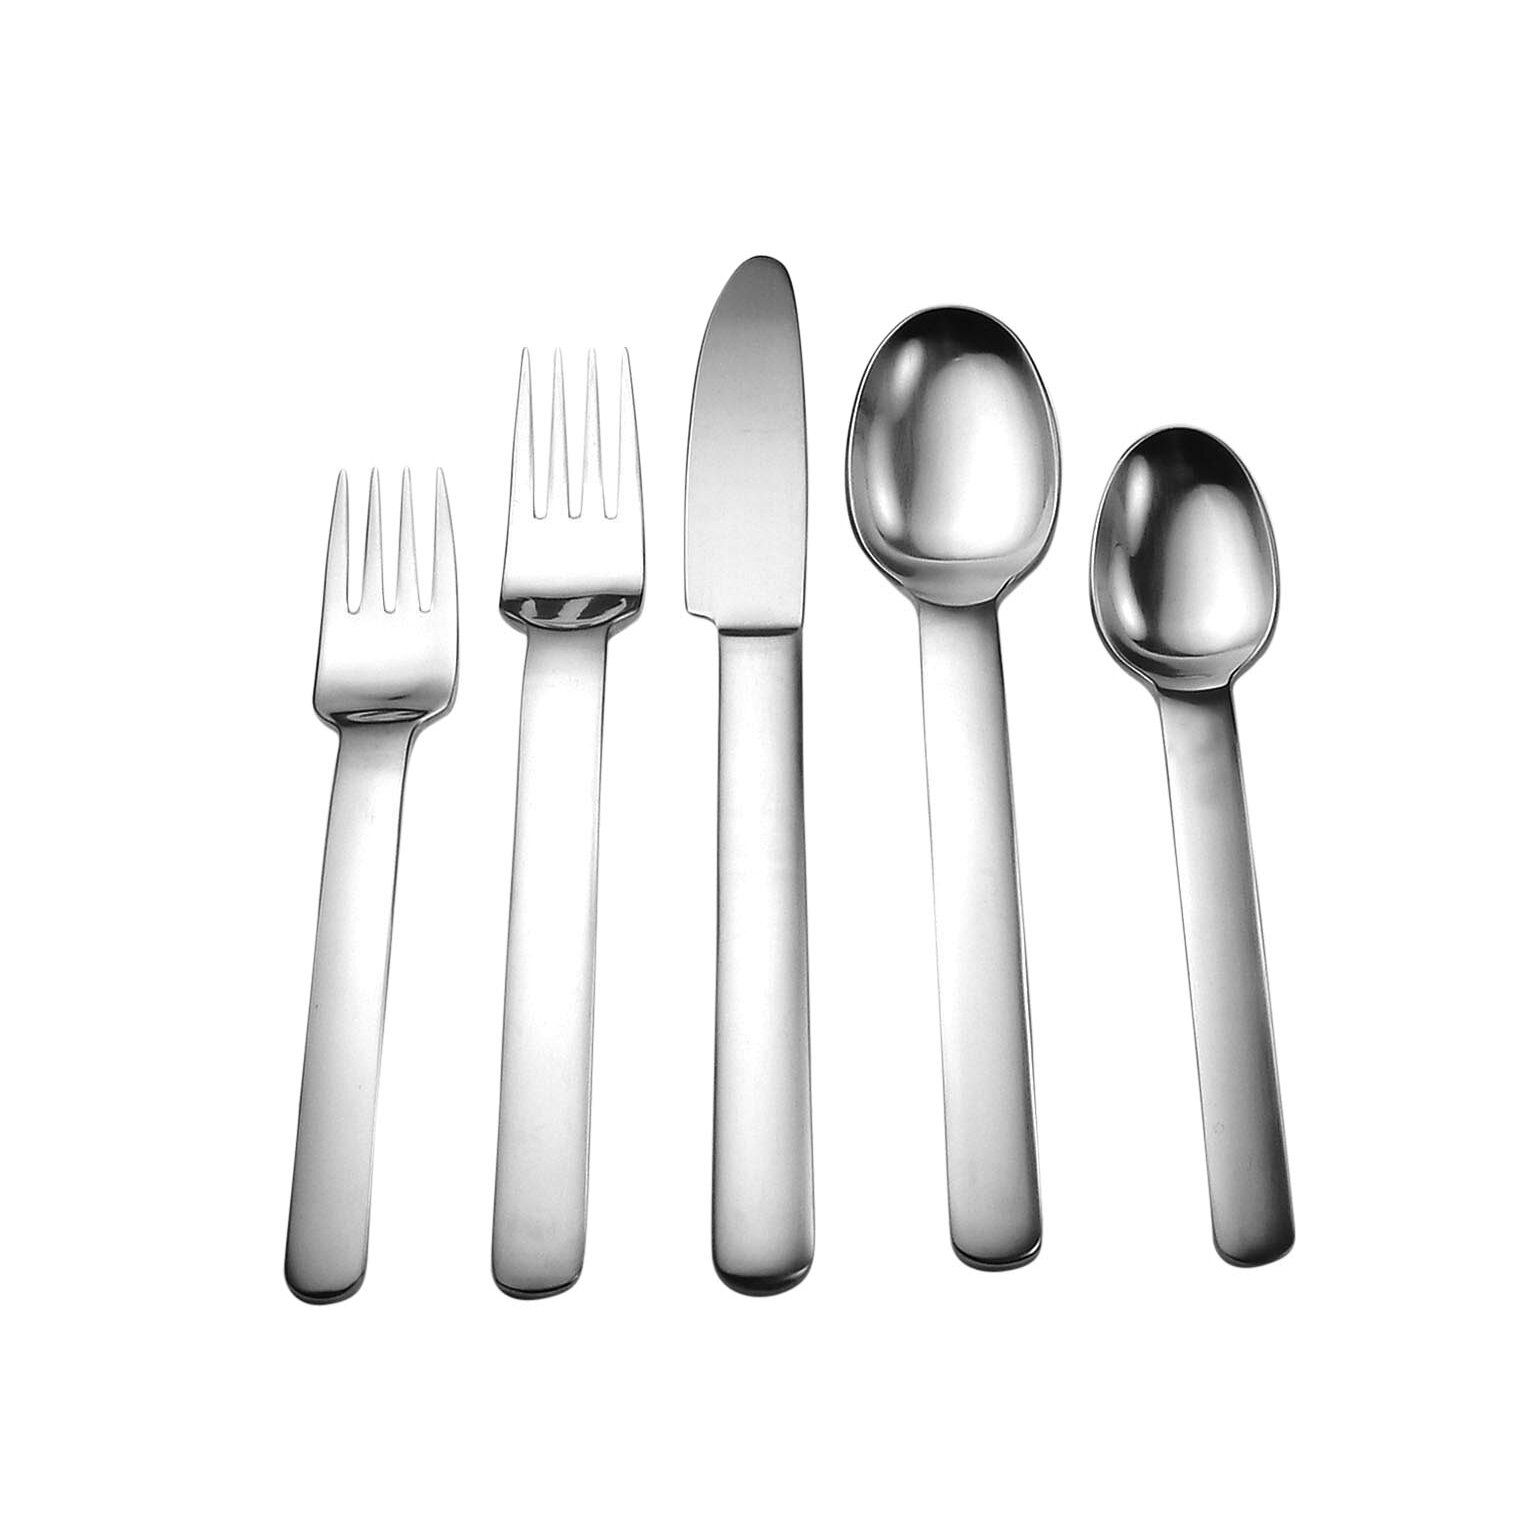 David Shaw Silverware Splendide Blizzard 45 Piece Flatware Set Reviews Wayfair